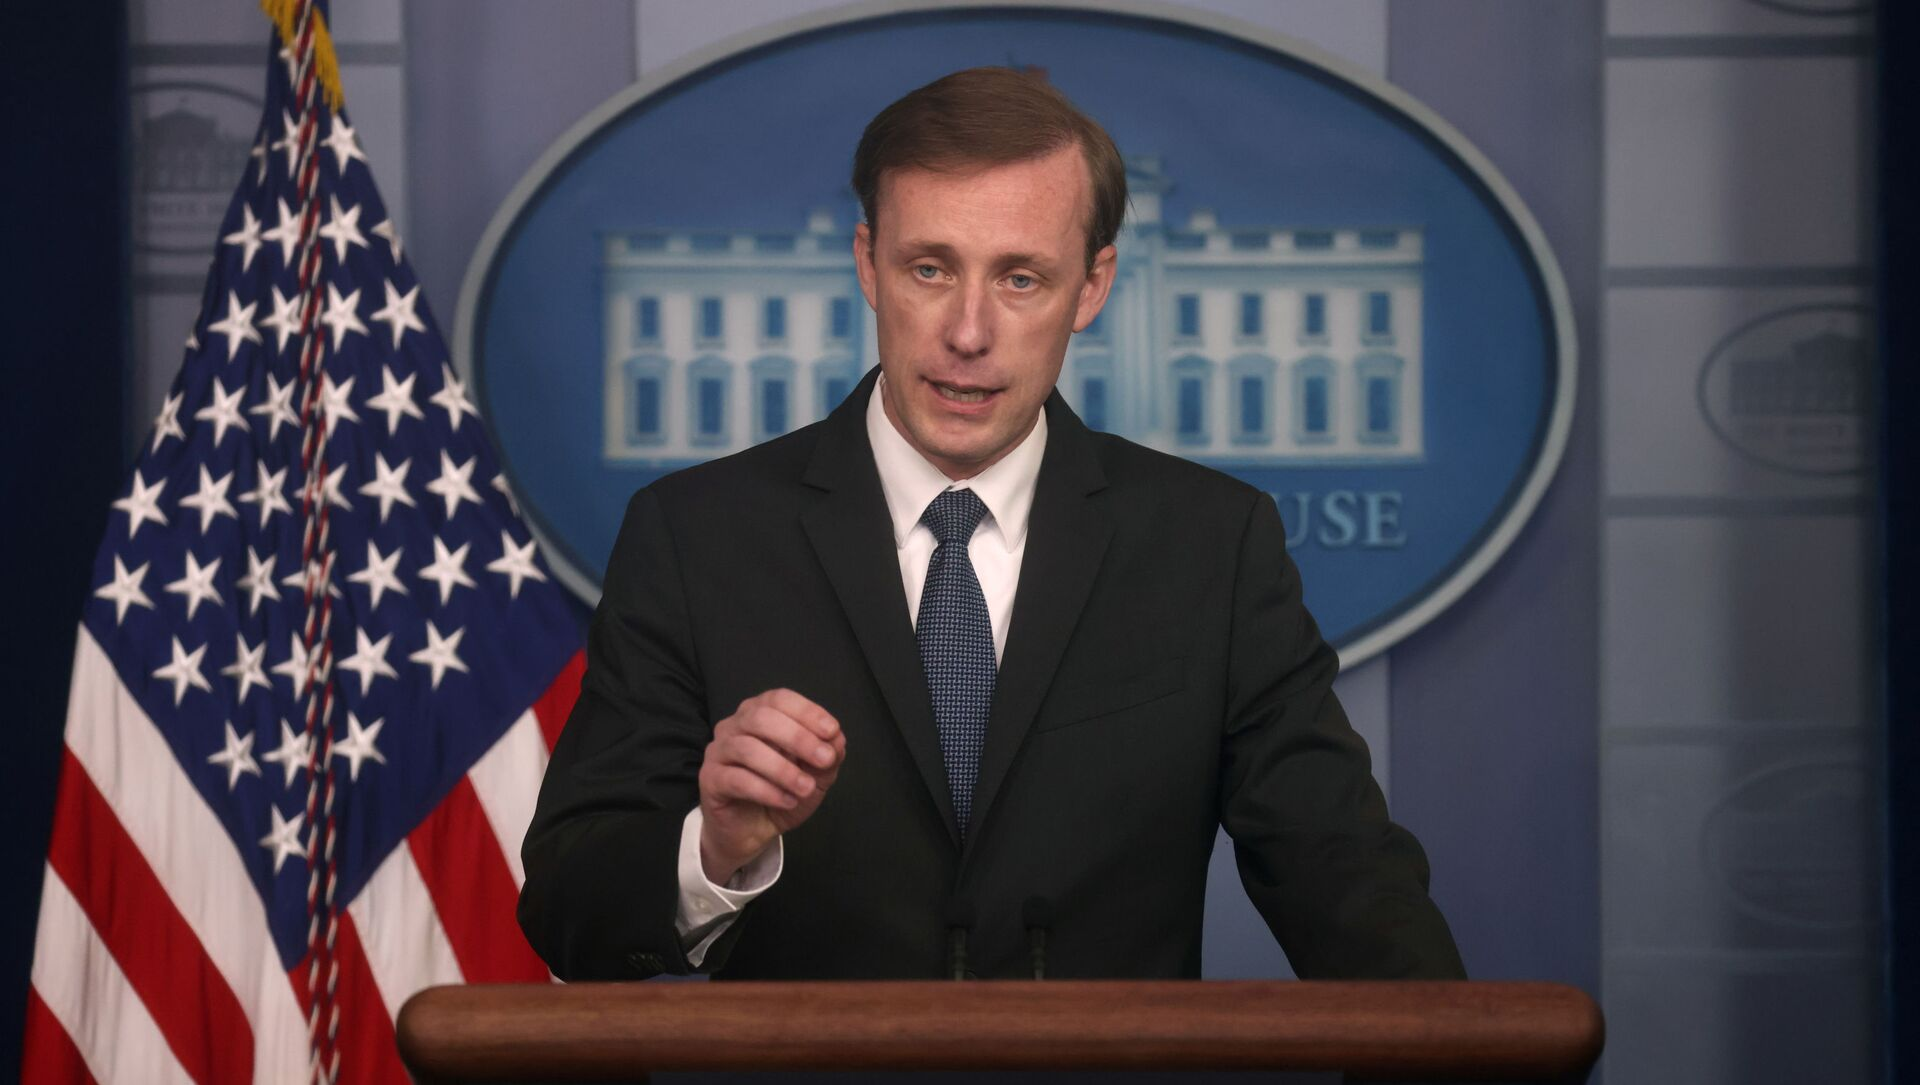 White House National Security Adviser Jake Sullivan takes questions during a press briefing at the White House in Washington, U.S., June 7, 2021. - Sputnik International, 1920, 01.08.2021